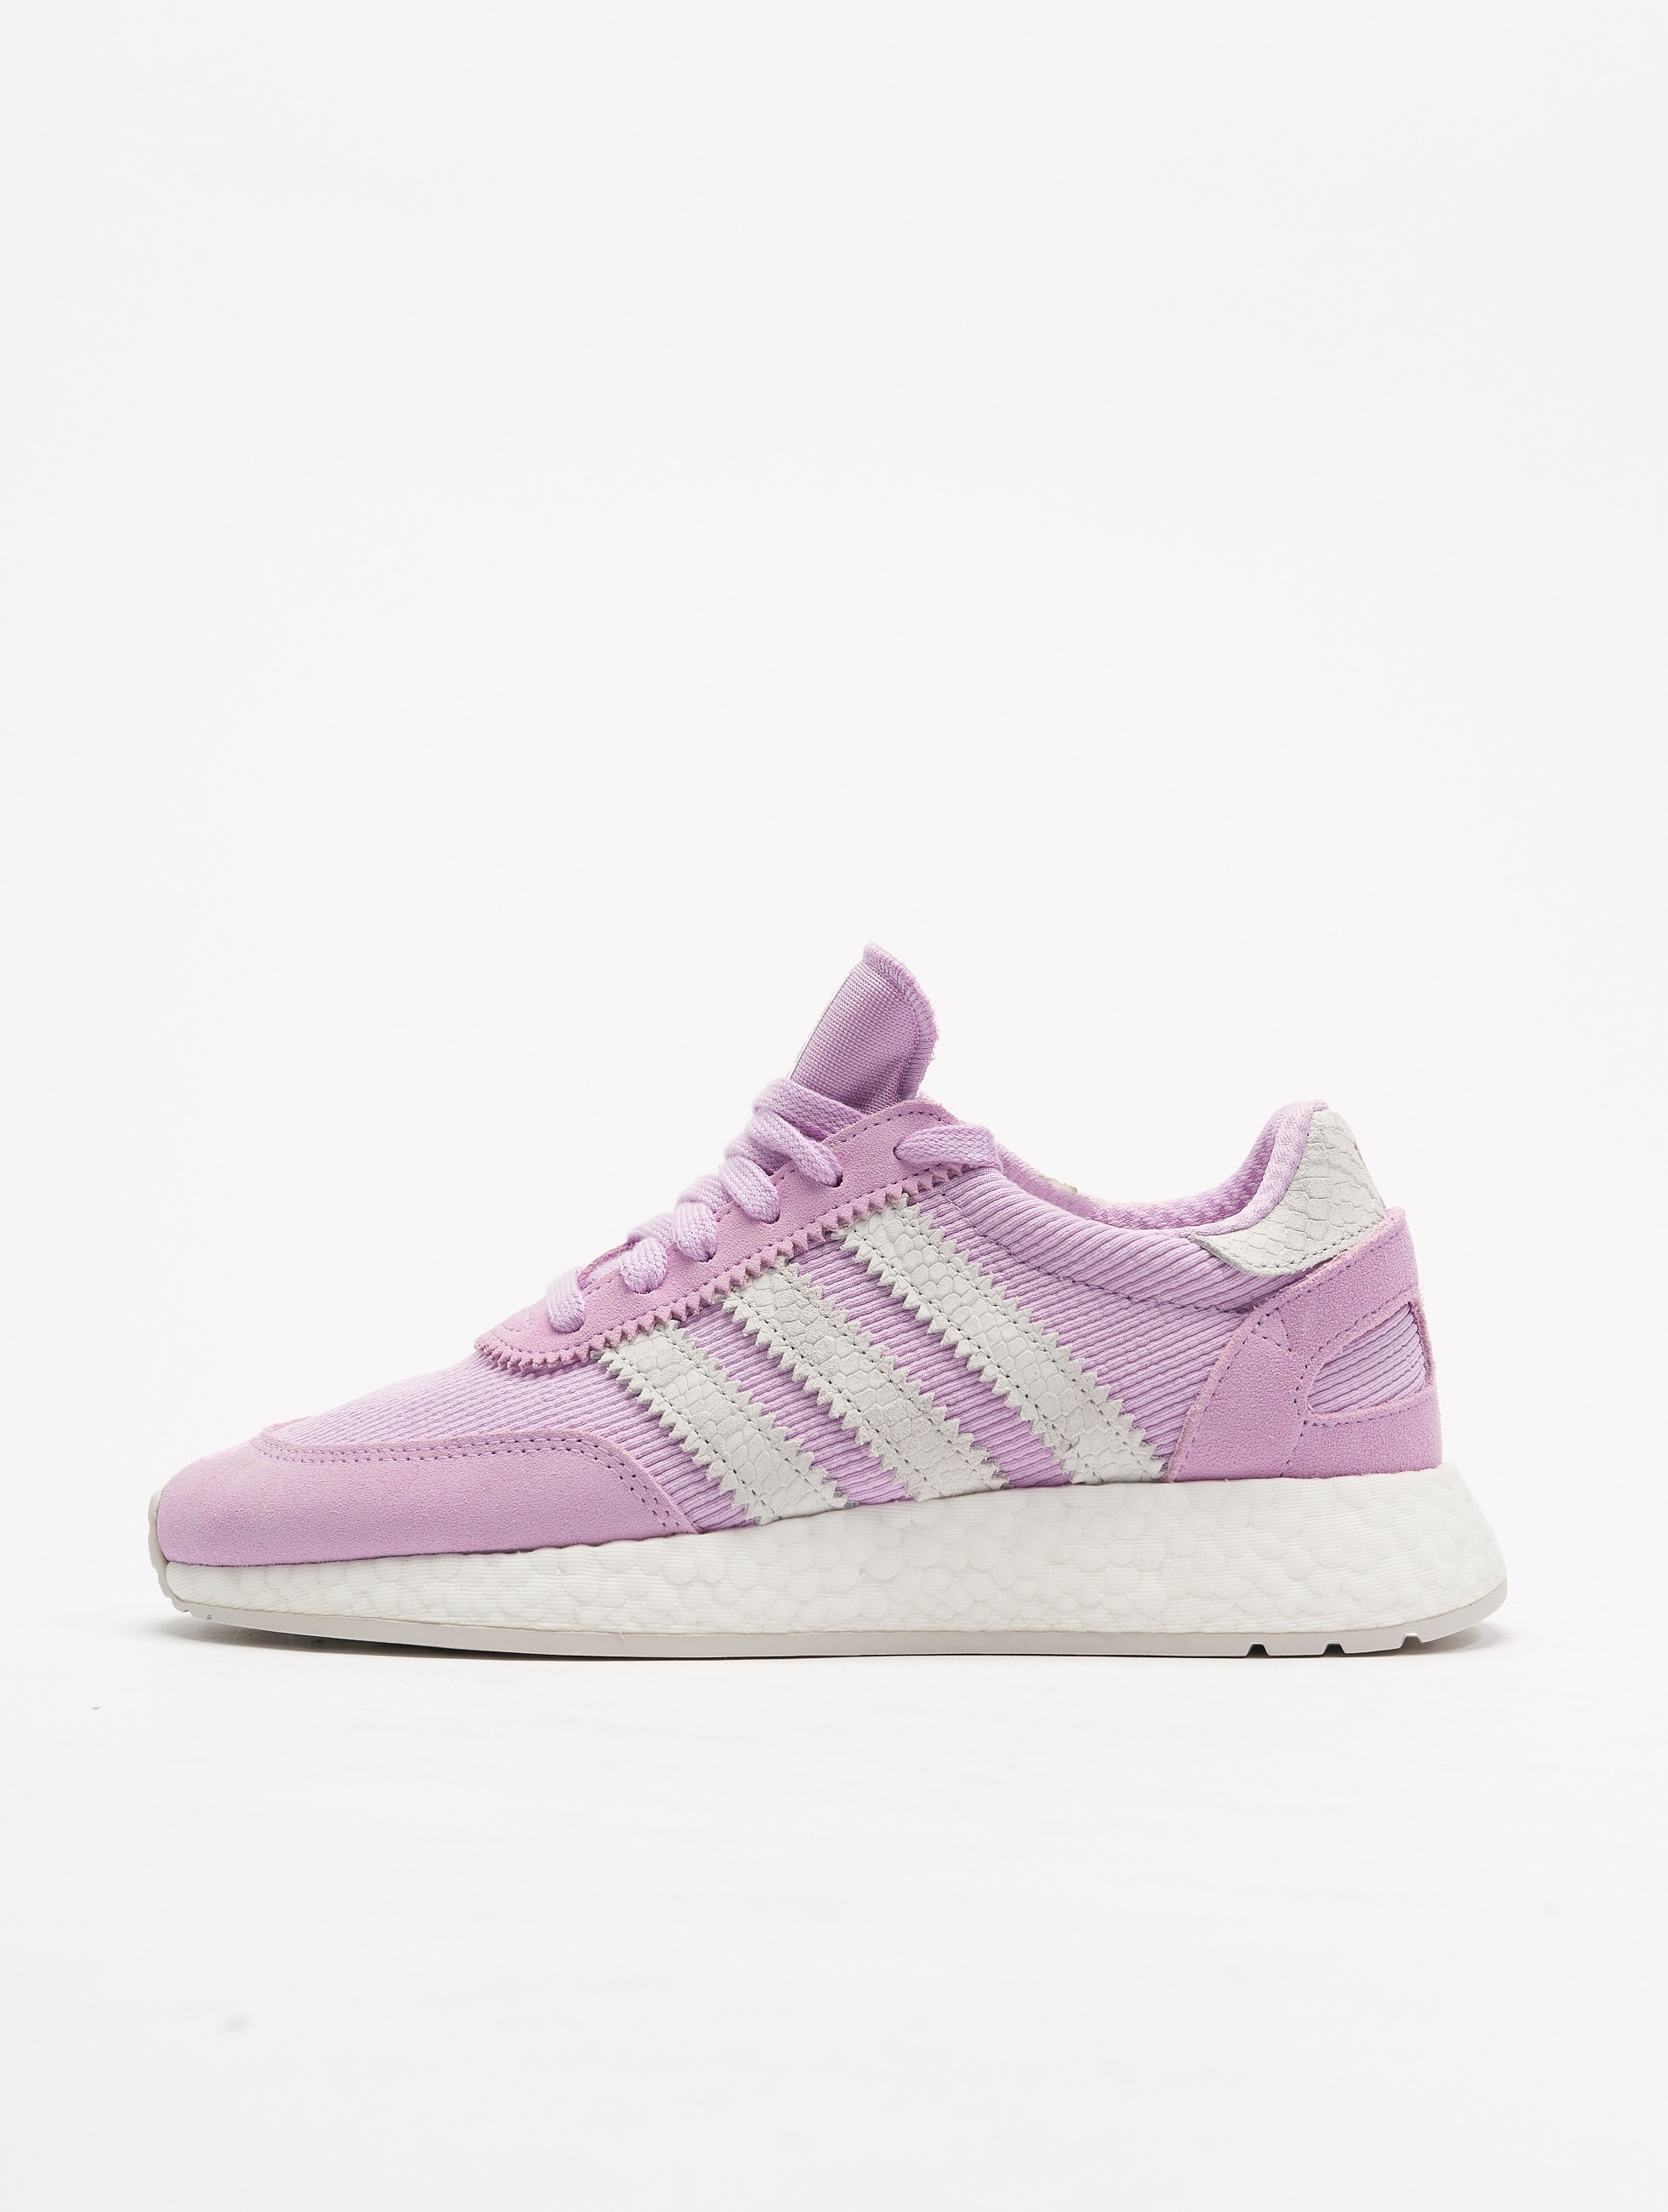 Adidas Originals I 5923 W Sneakers Clear Lilac